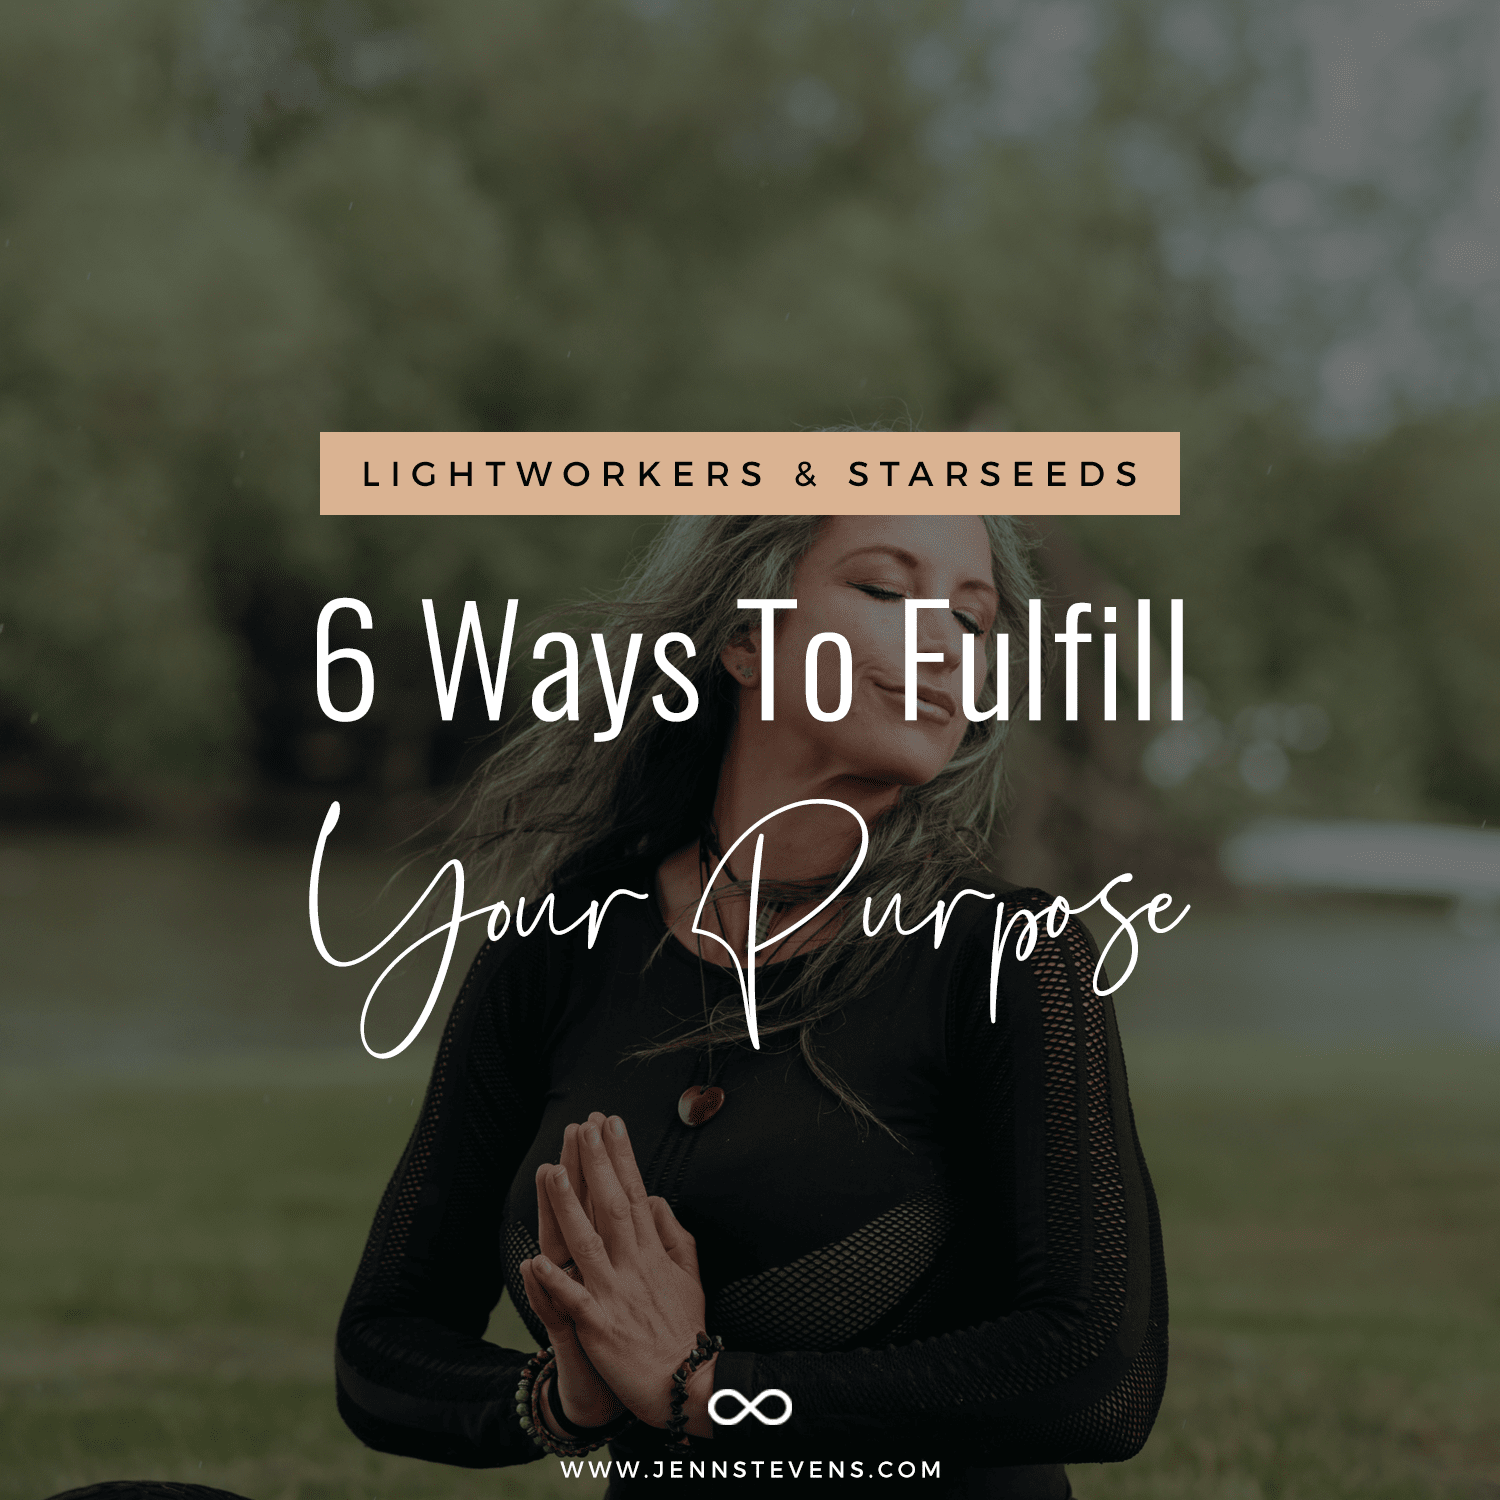 Lightworkers & Starseeds: 6 Ways To Fulfill Your Purpose